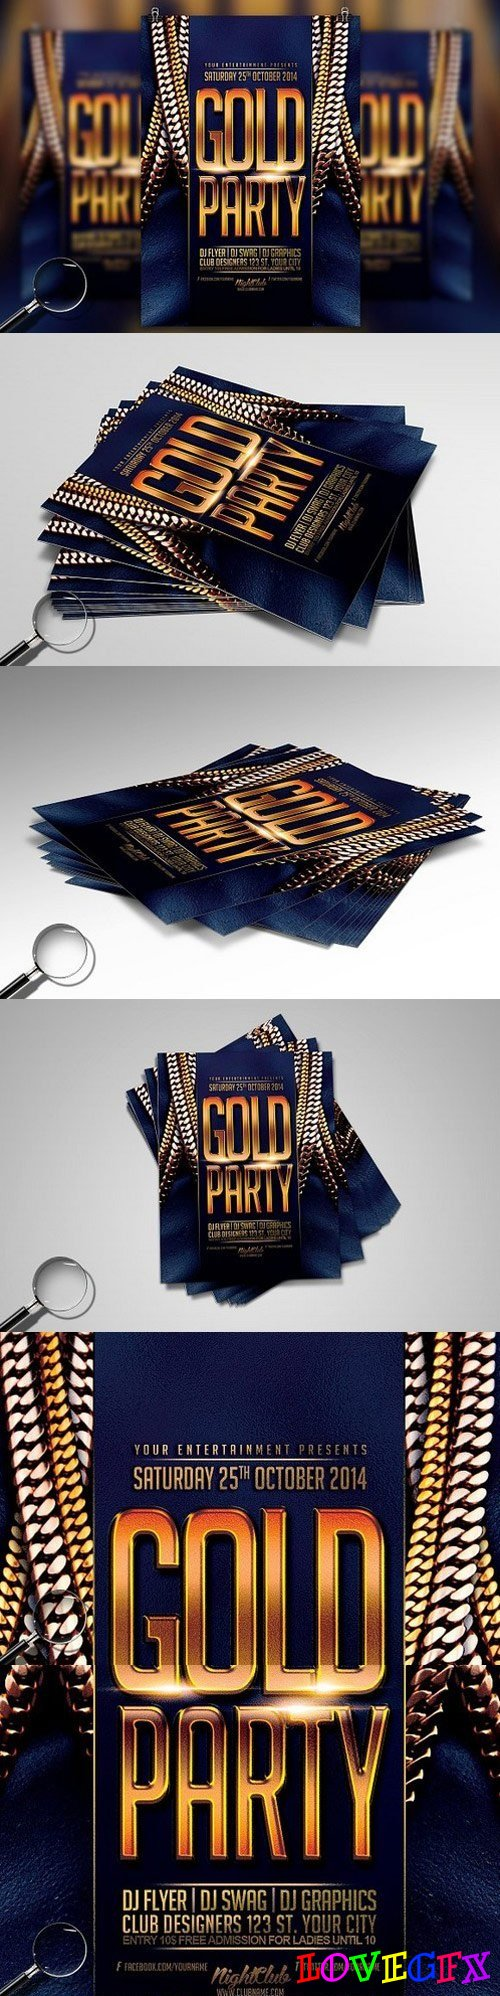 Gold Party | Urban Flyer Template 1617976